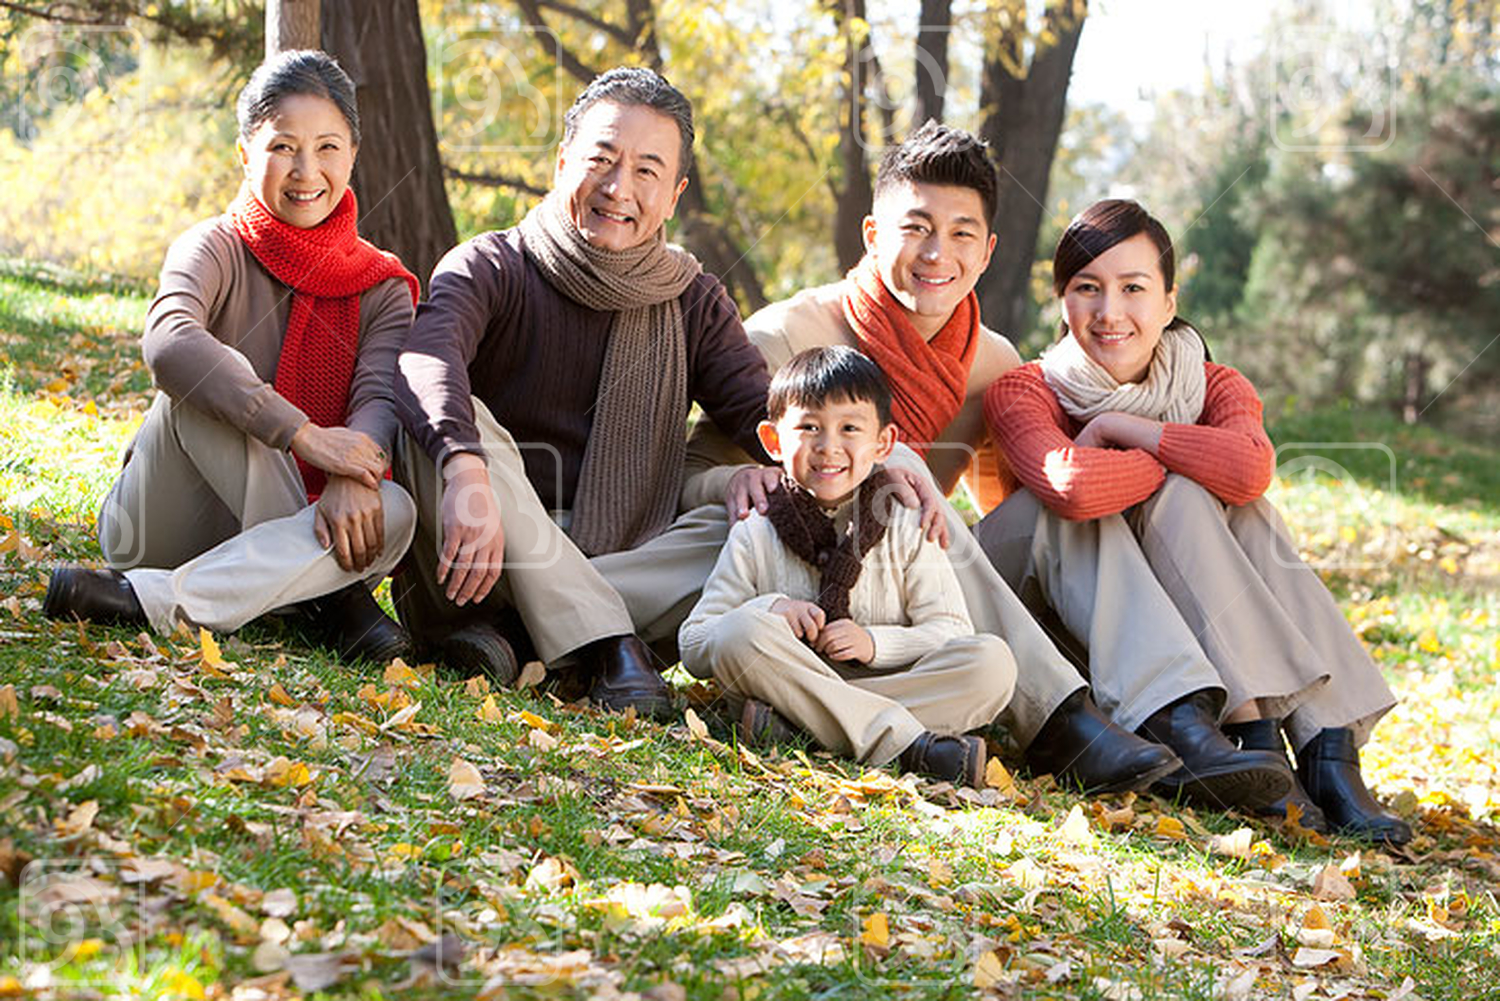 Chinese family sitting on the grass in a park in autumn